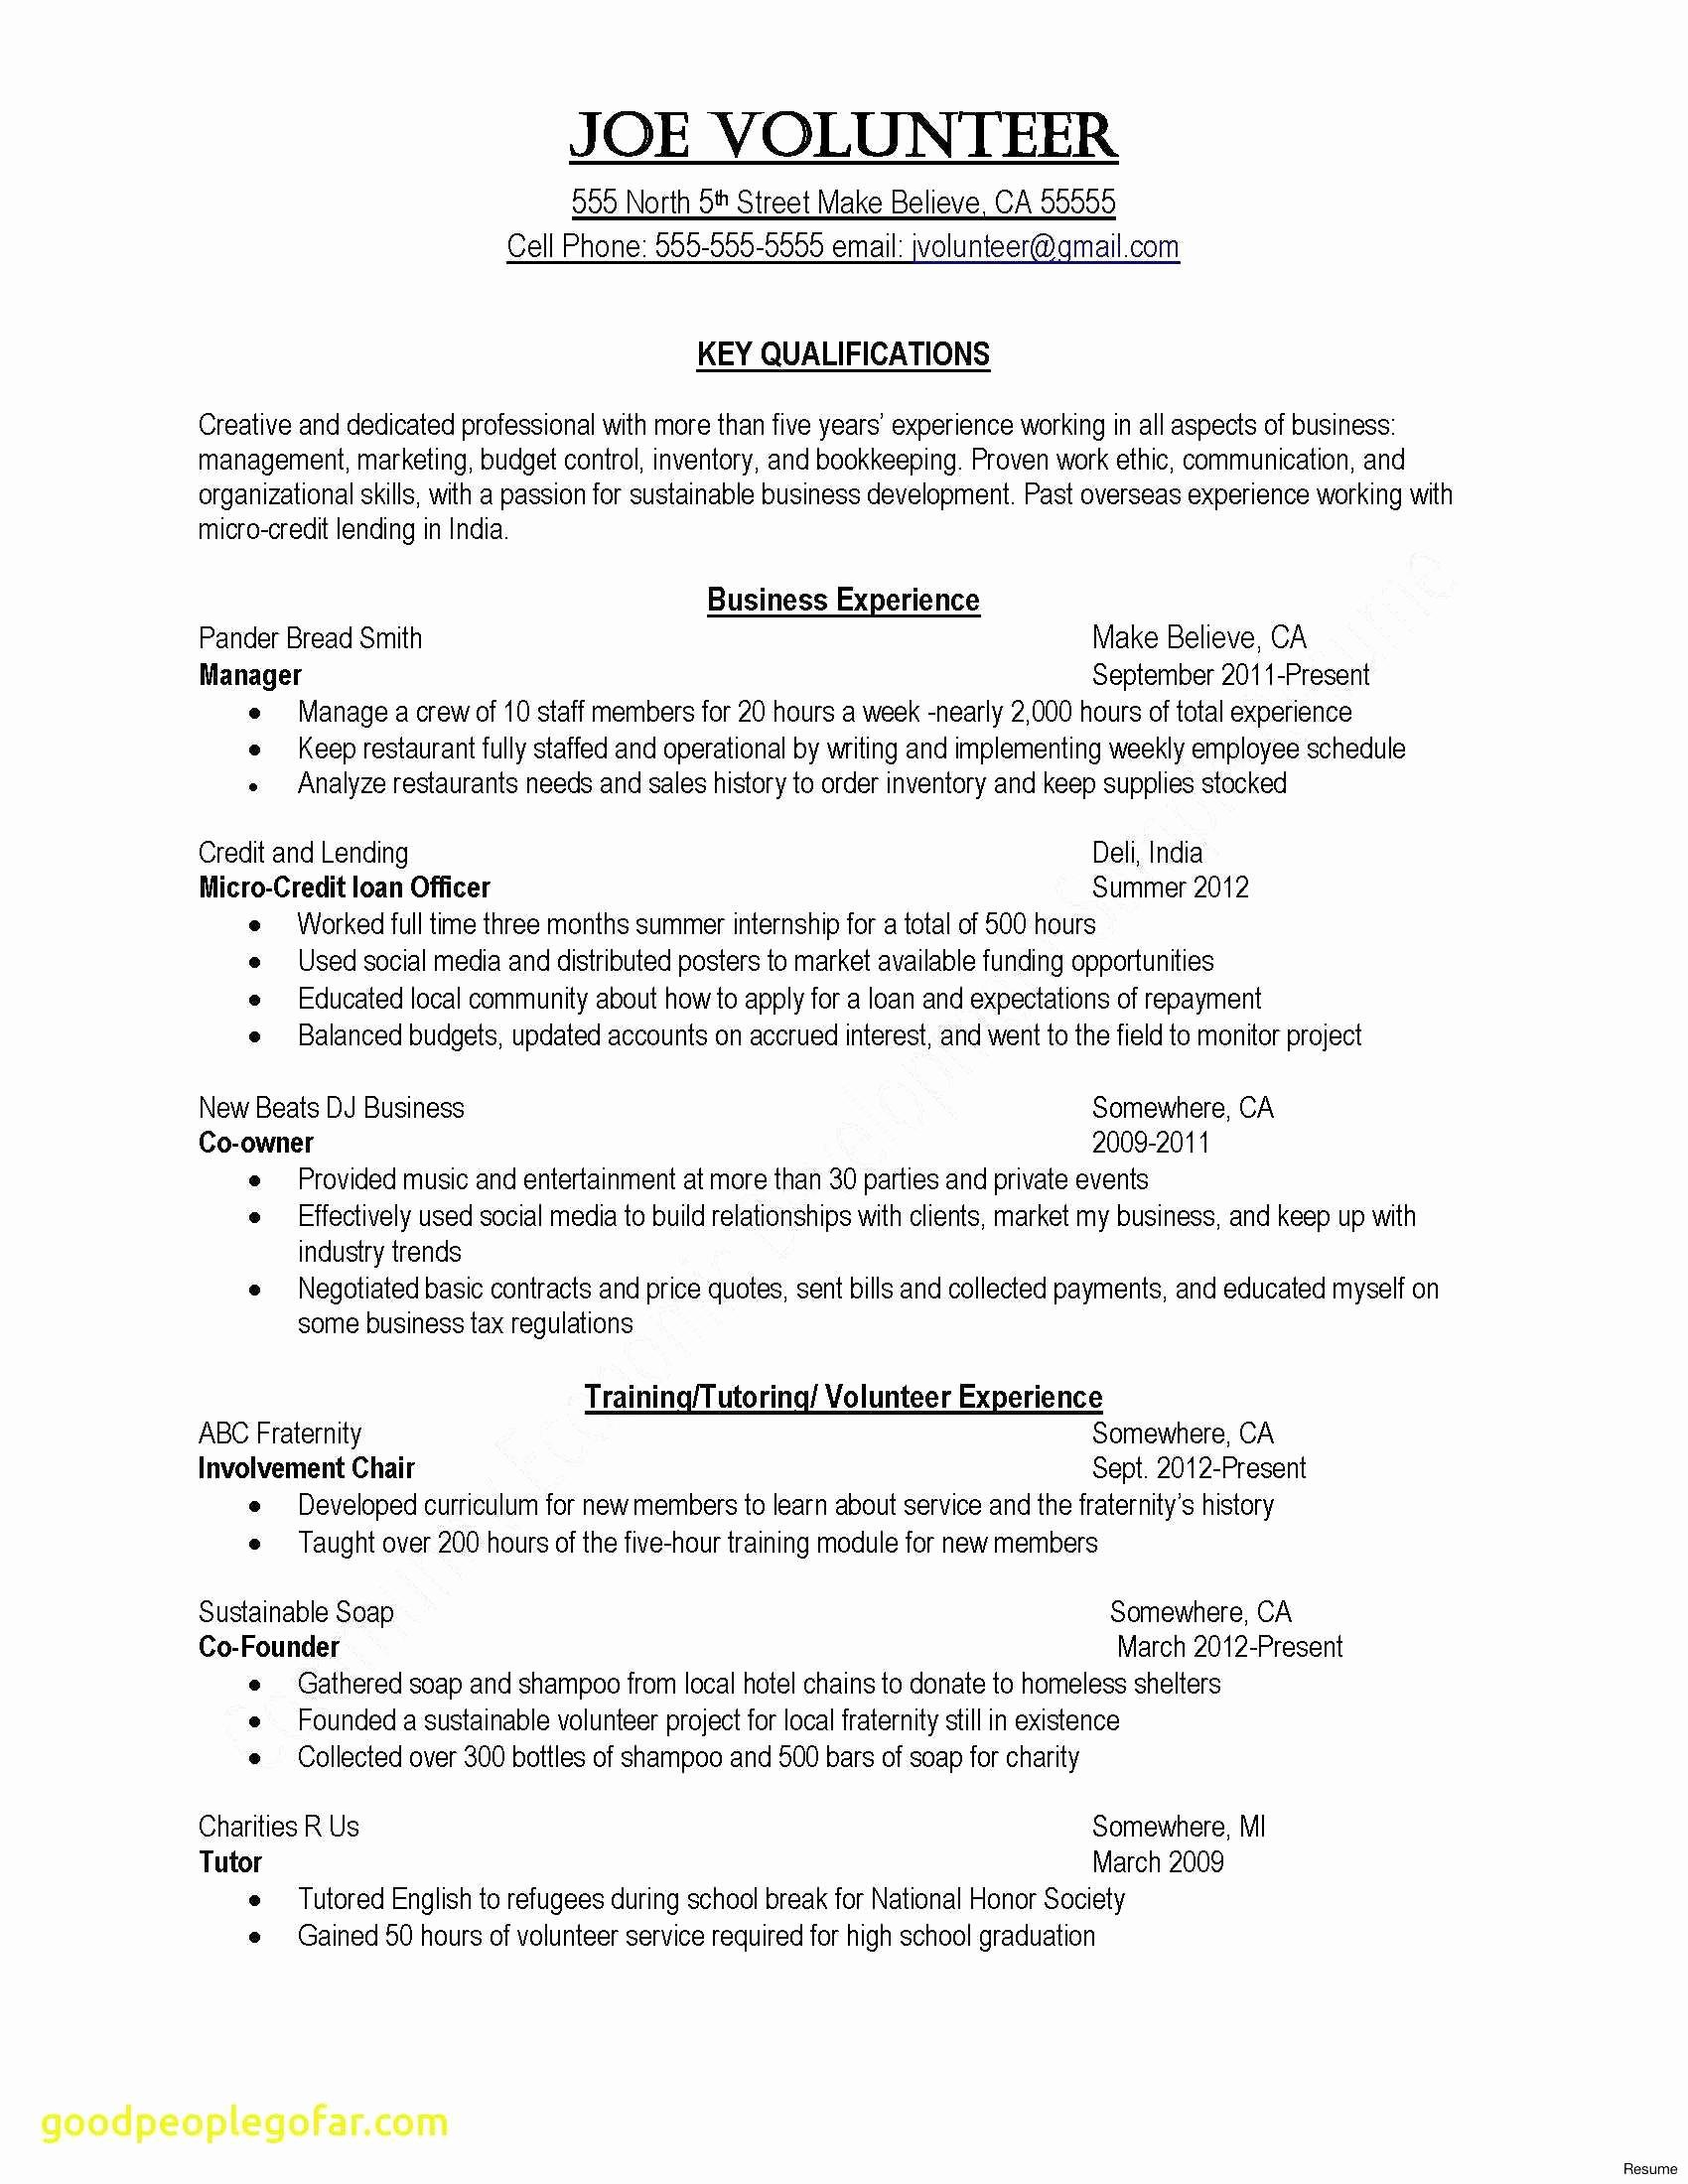 Draft Cover Letter Template - Resume Cover Letter Template Beautiful Elegant Sample College